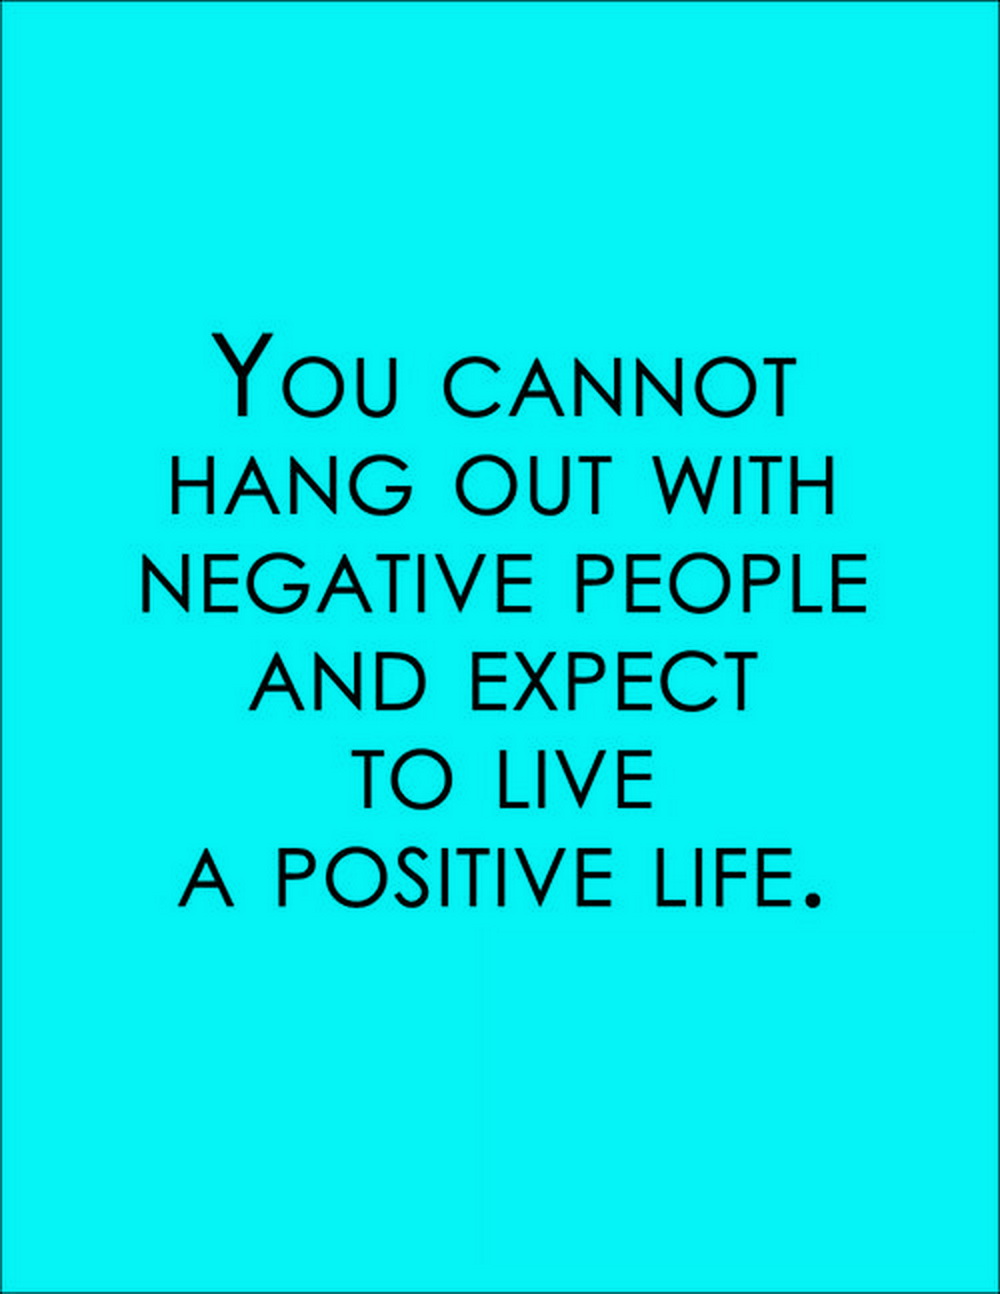 Motivational Quotes For Individuals: Motivational Quotes For Negative People. QuotesGram